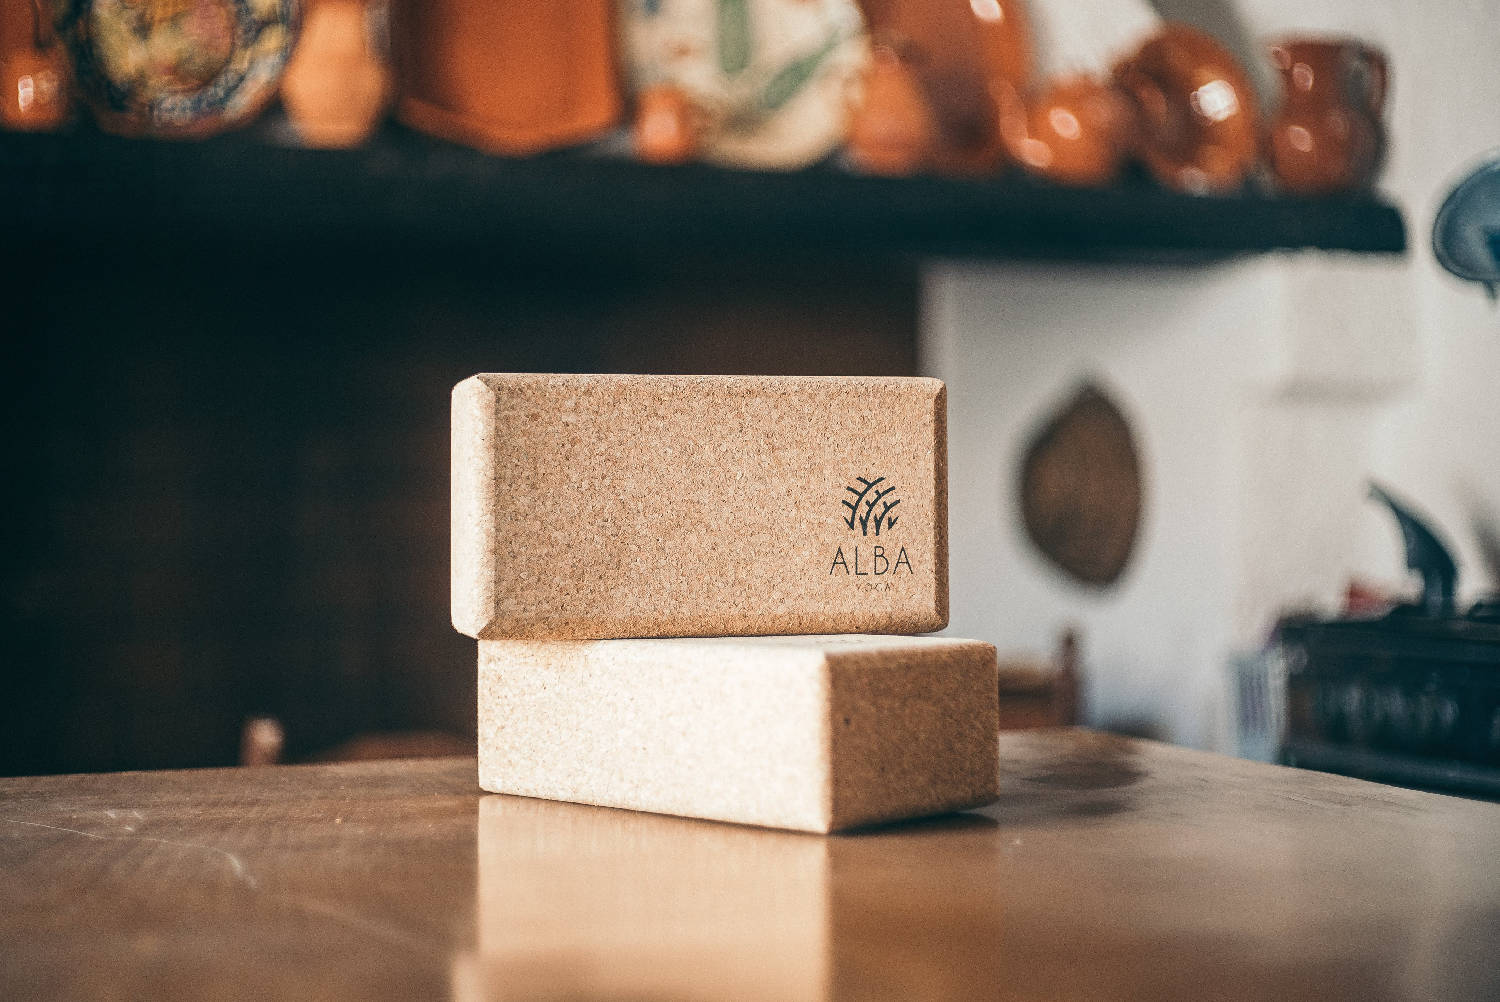 Alba Yoga cork yoga blocks stacked on top of each other on a table.